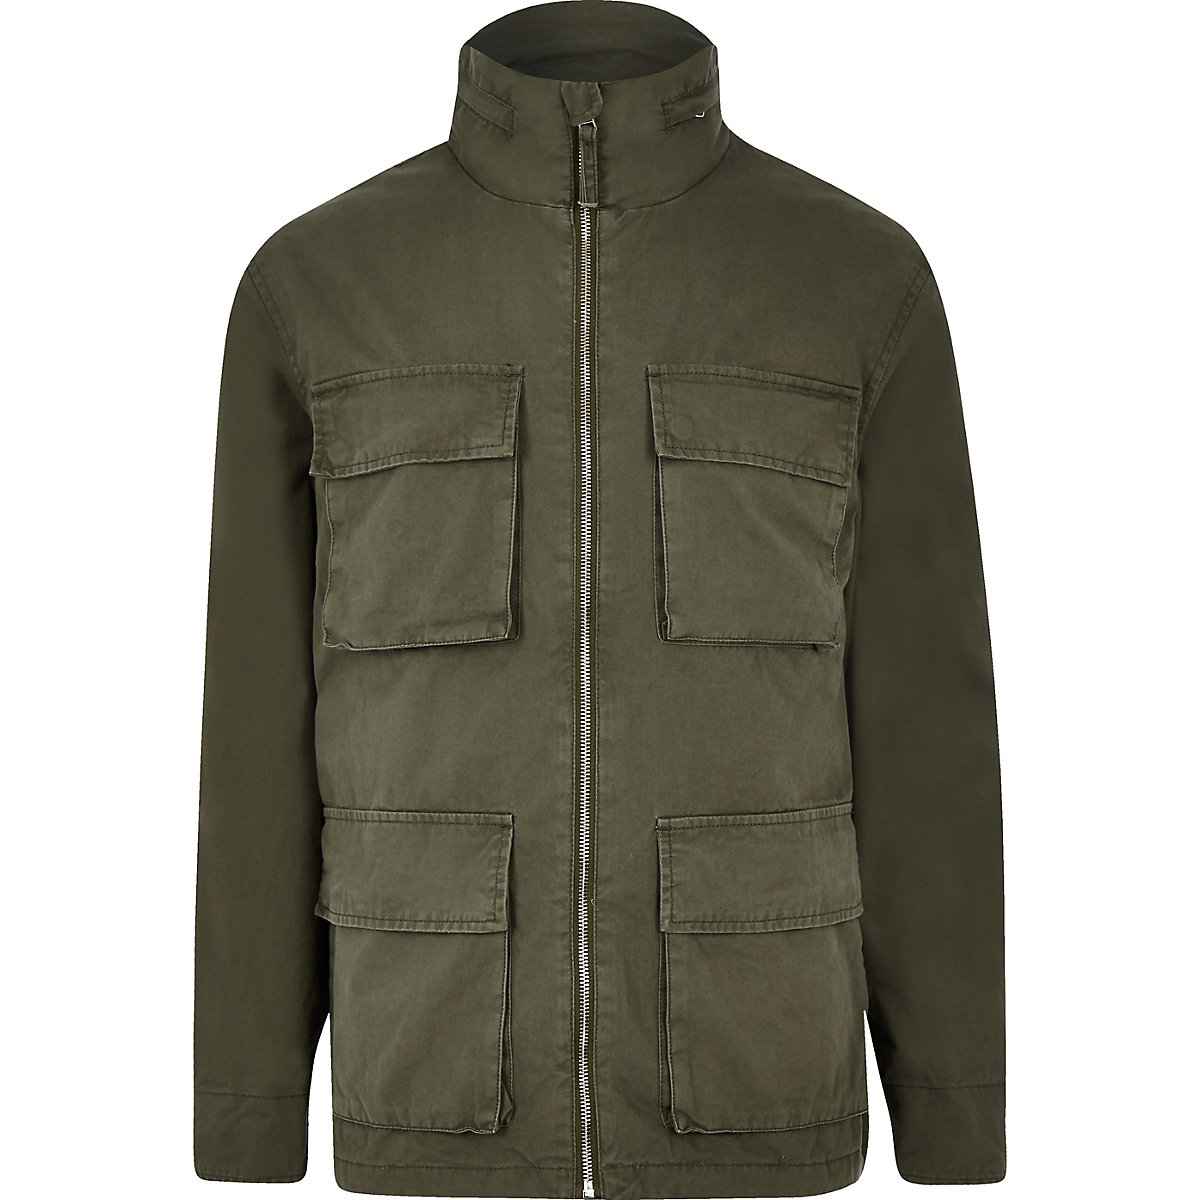 Minimum green army jacket